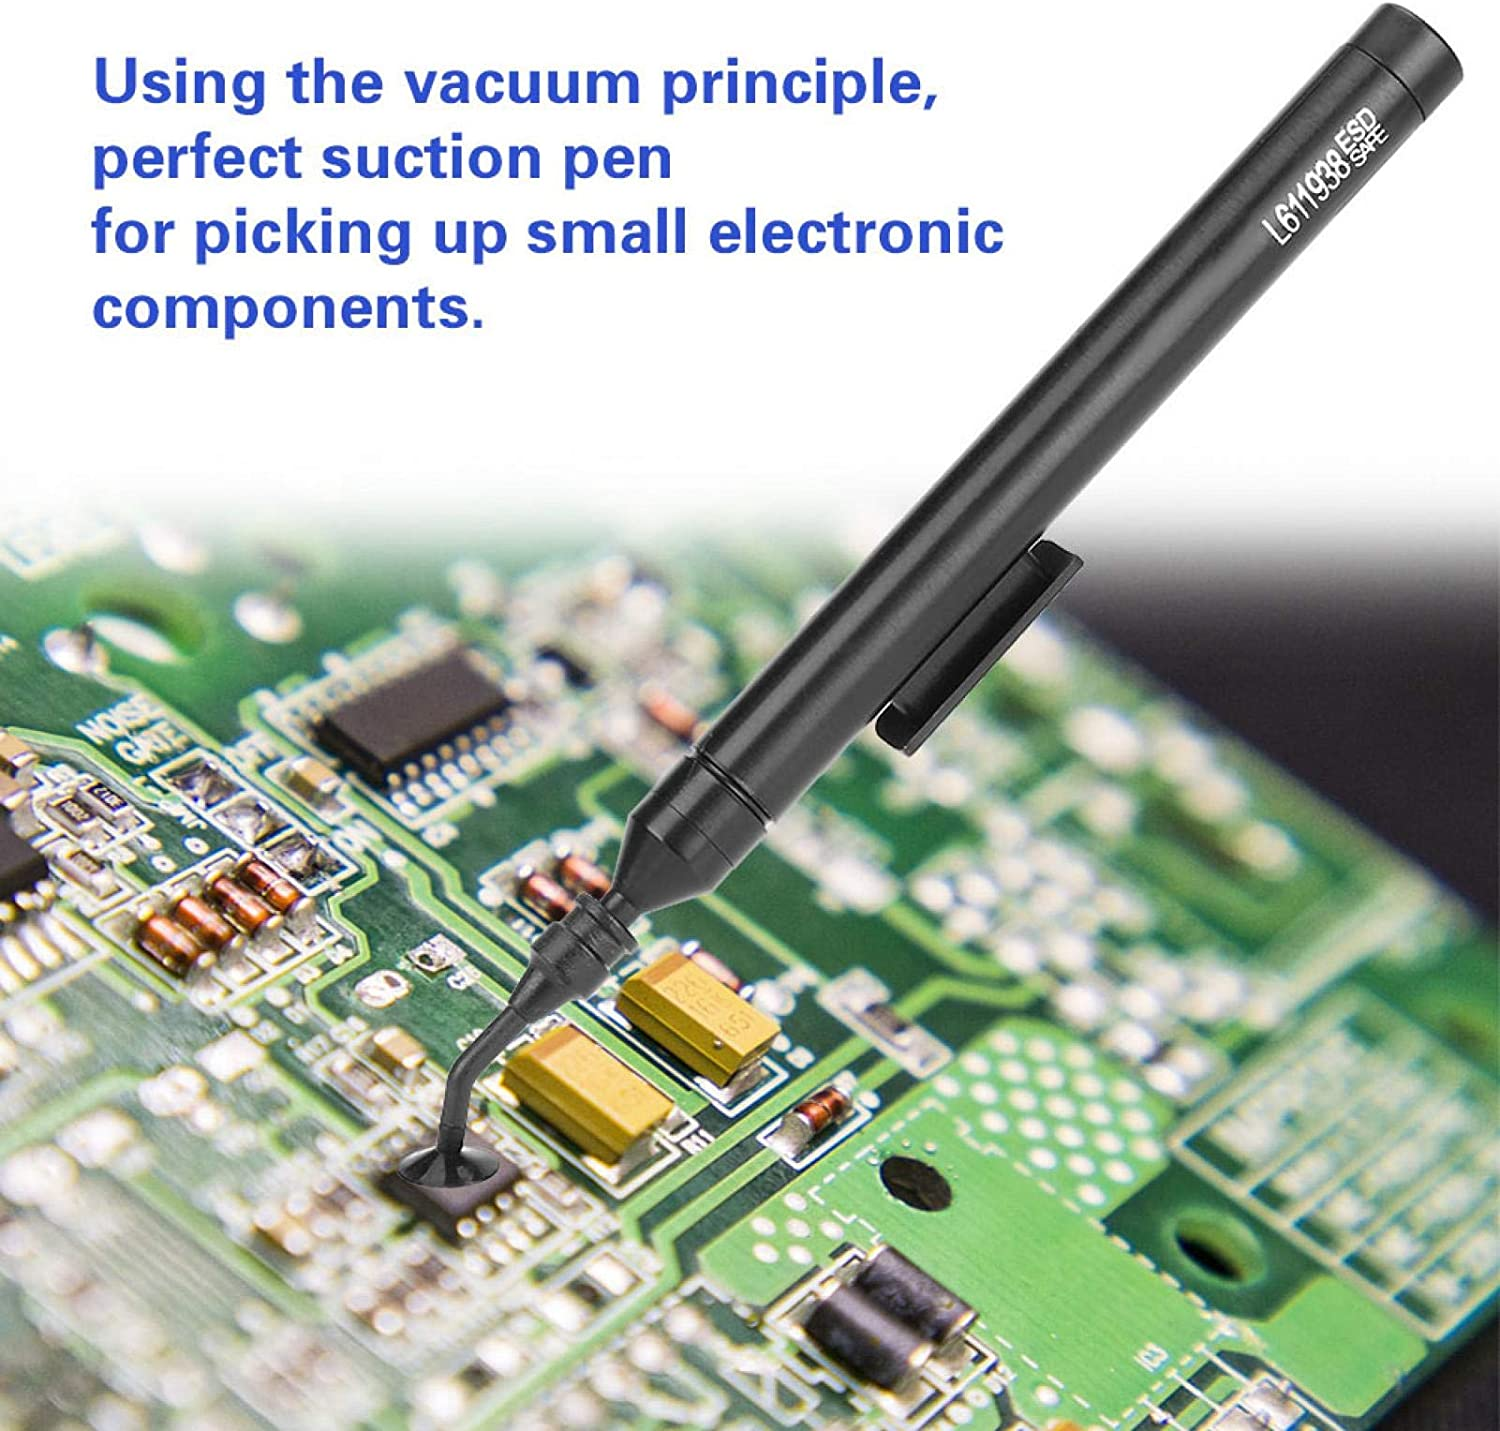 Vacuum Suction Pen,Manual Vacuum Suction Pen Soldering Sucking Pickup Tool Kit with Suckers for IC SMD